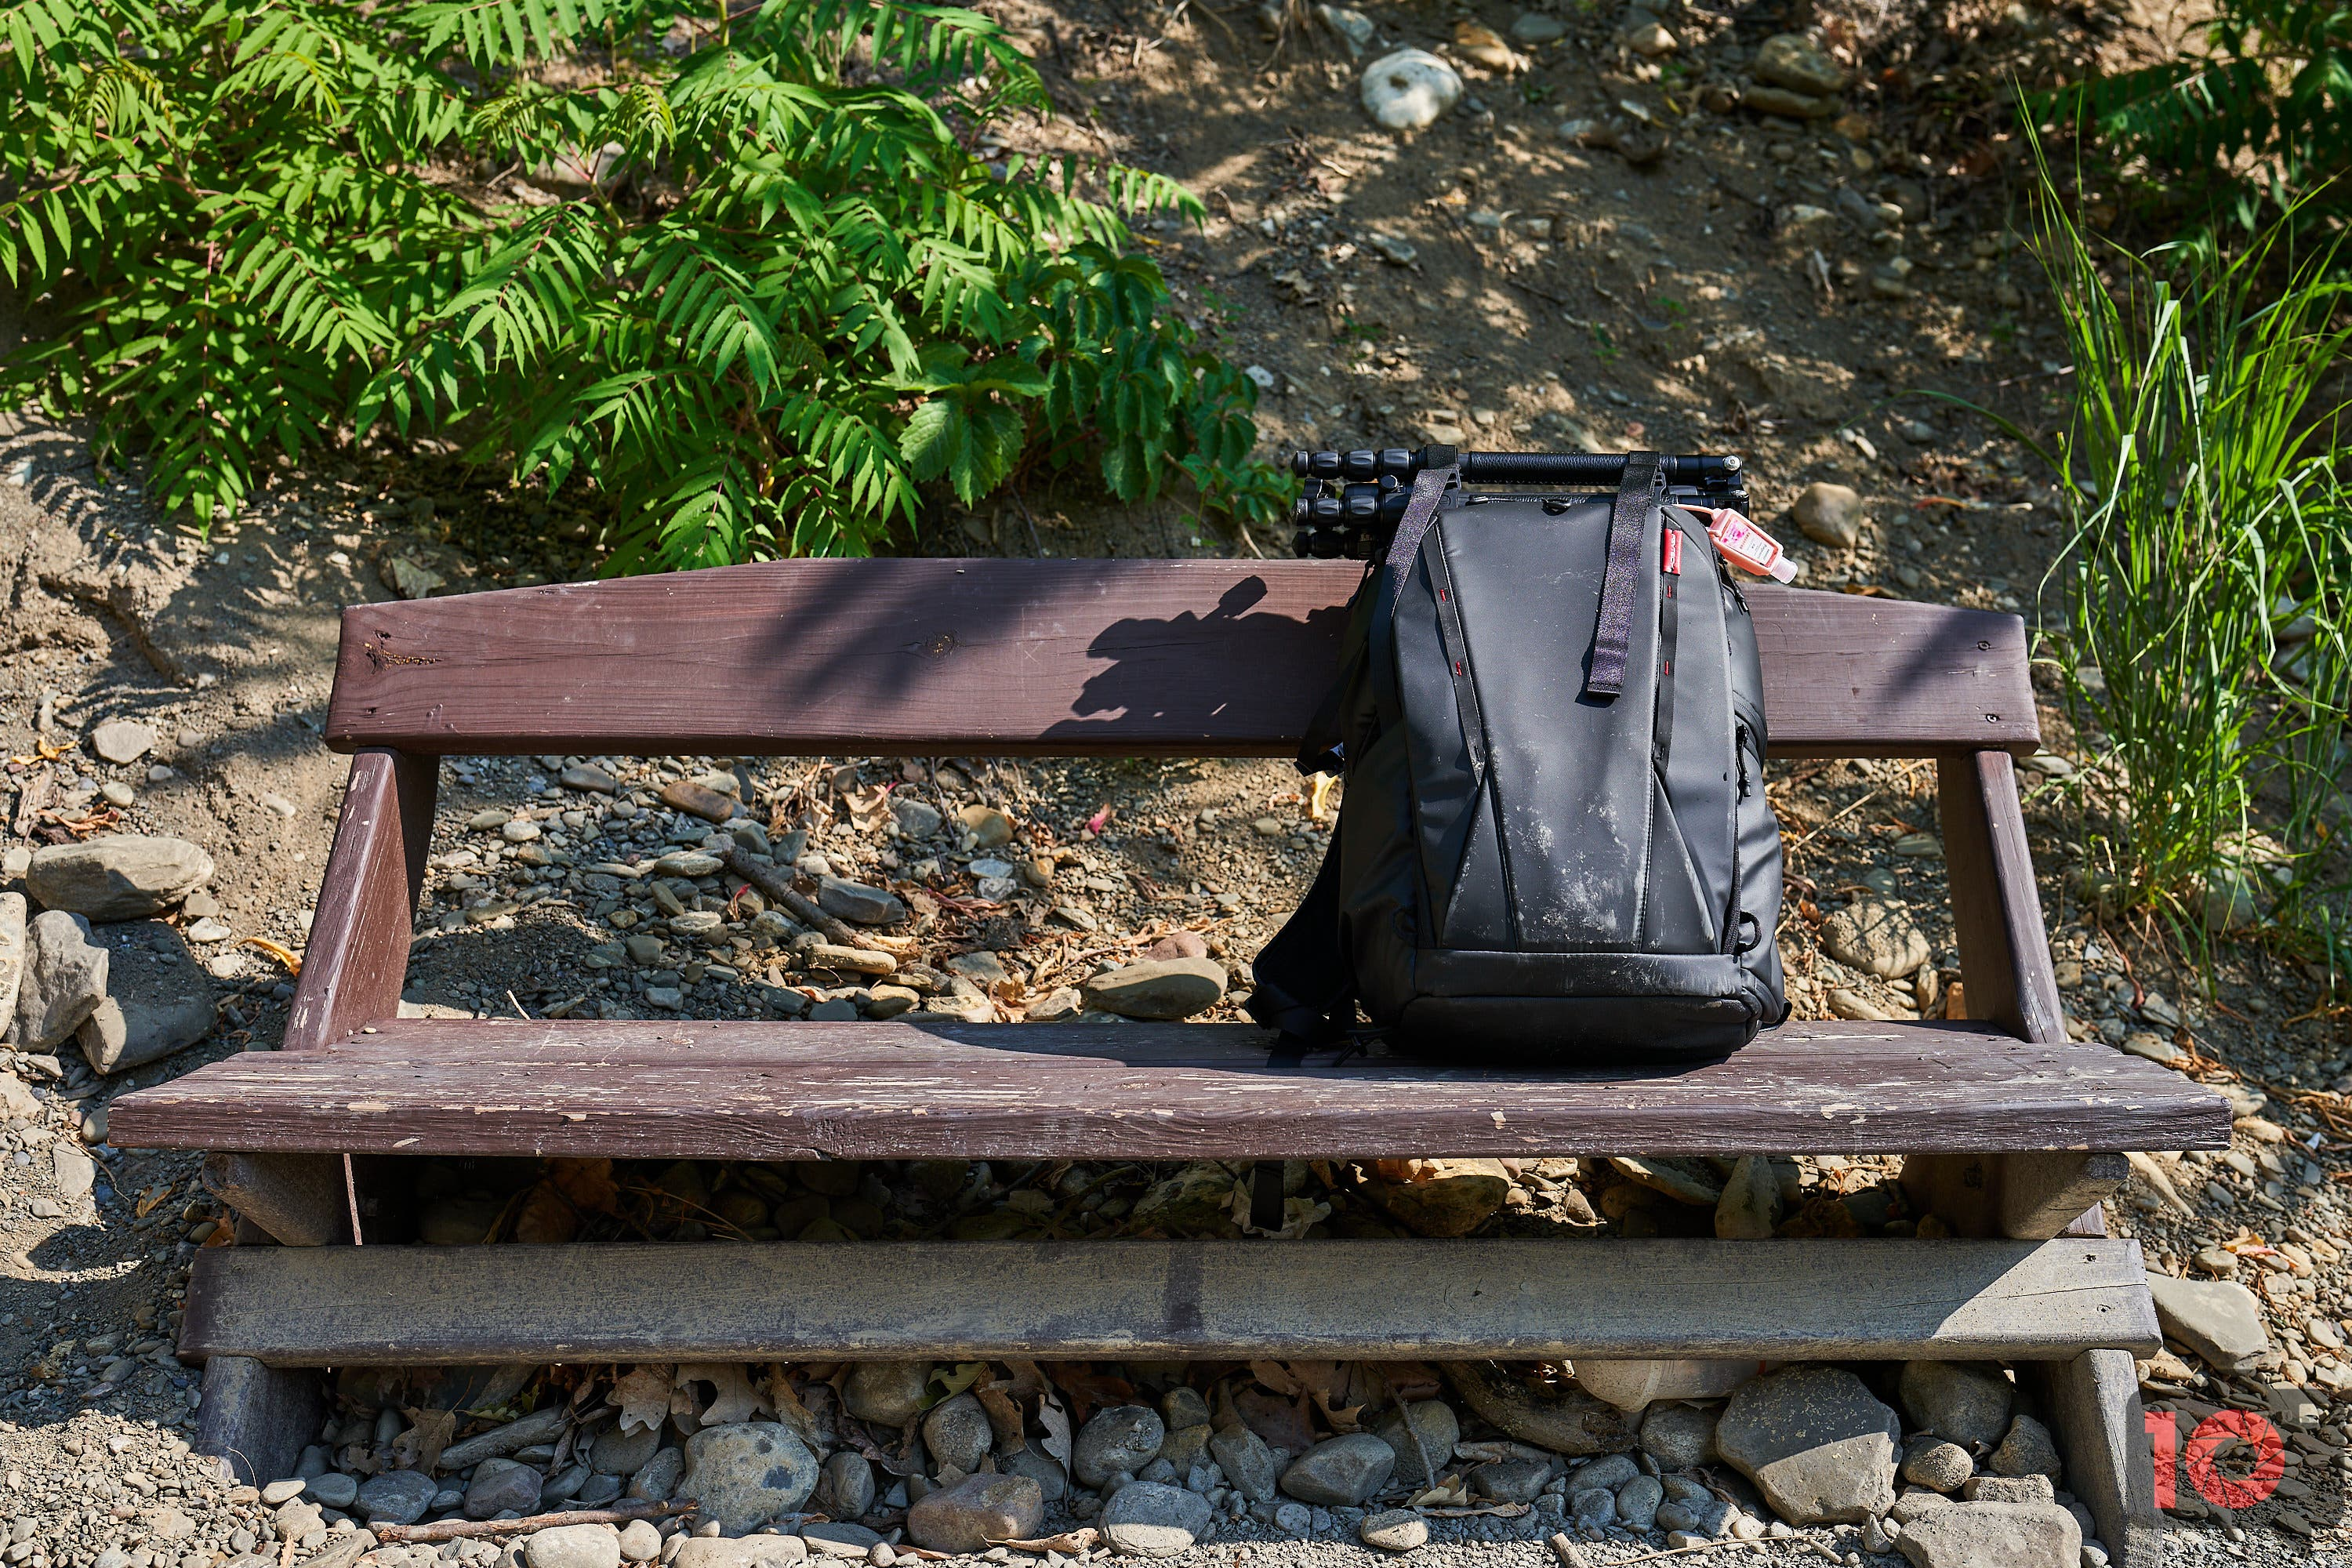 The Most Modular Camera Bag Yet? The OneMo Backpack 25L Review